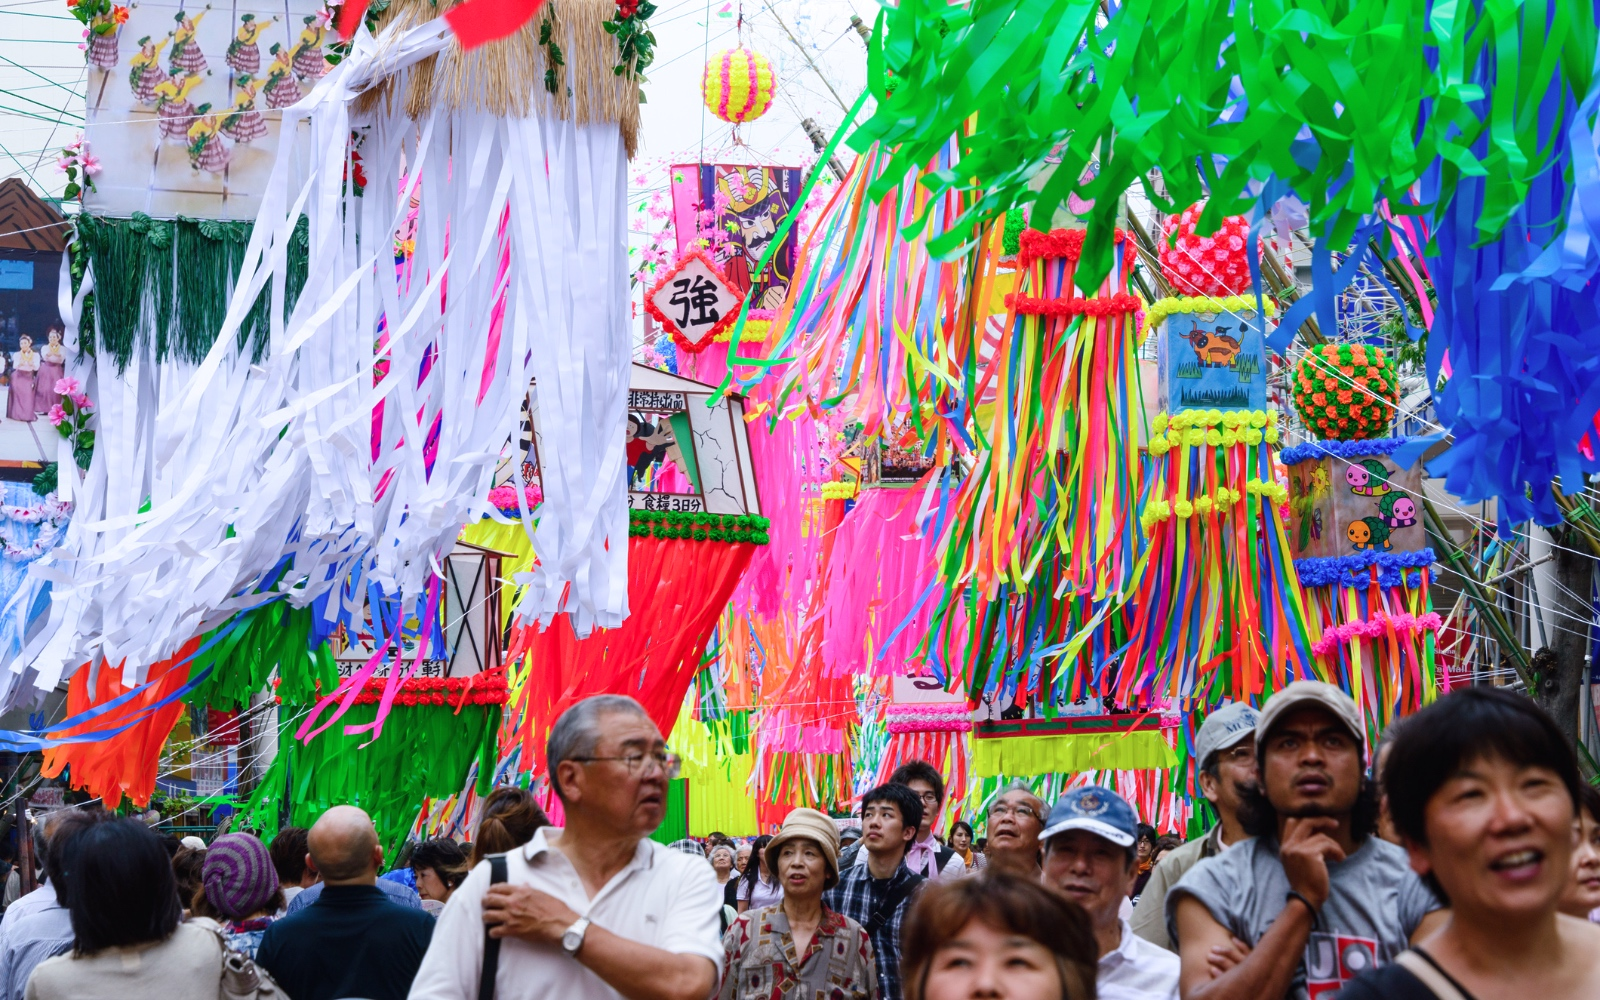 Colorful decorations wave in the wind at the Tanabata Festival in Hiratsuka, Japan.